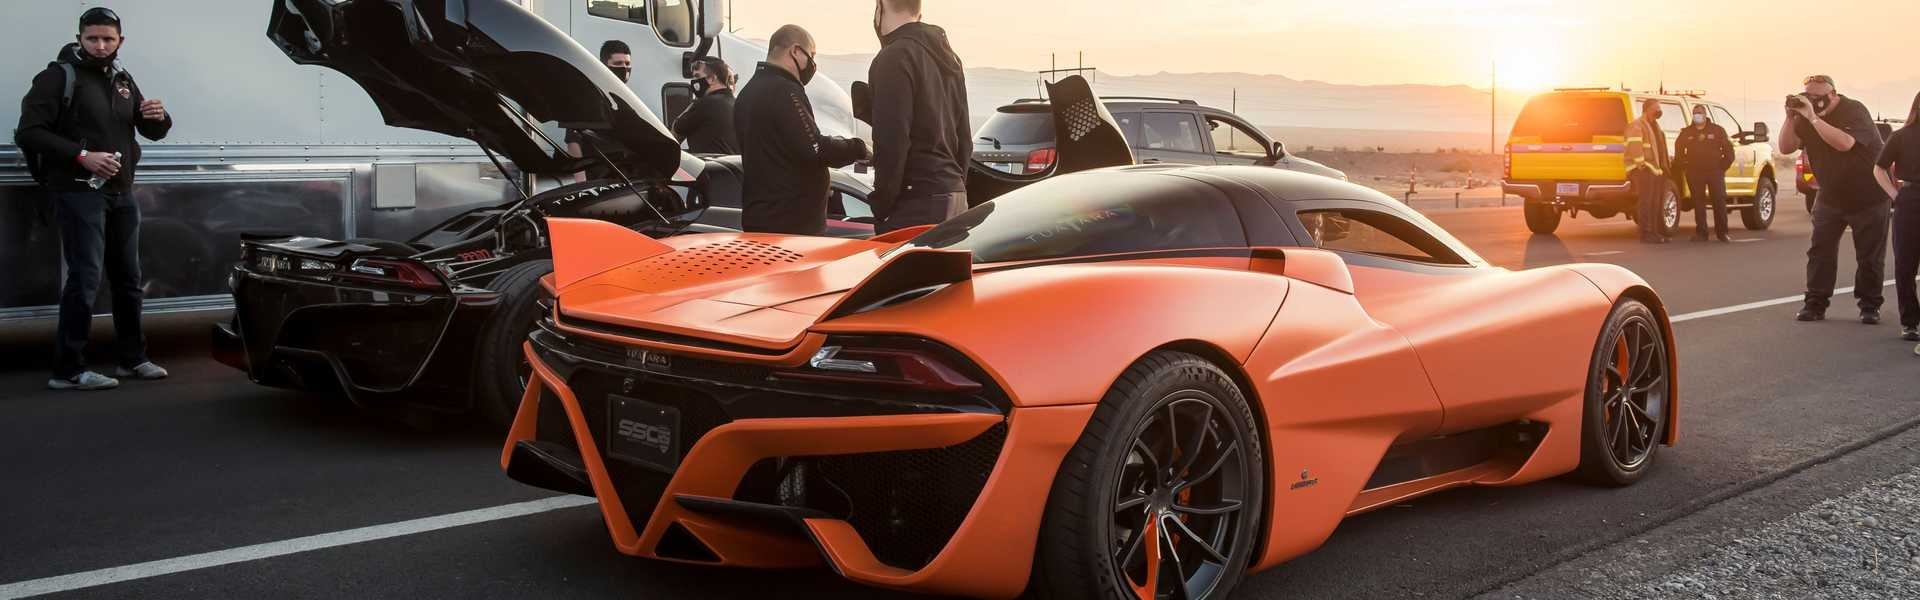 ssc-tuatara-becomes-the-fastest-production-car (1).jpg